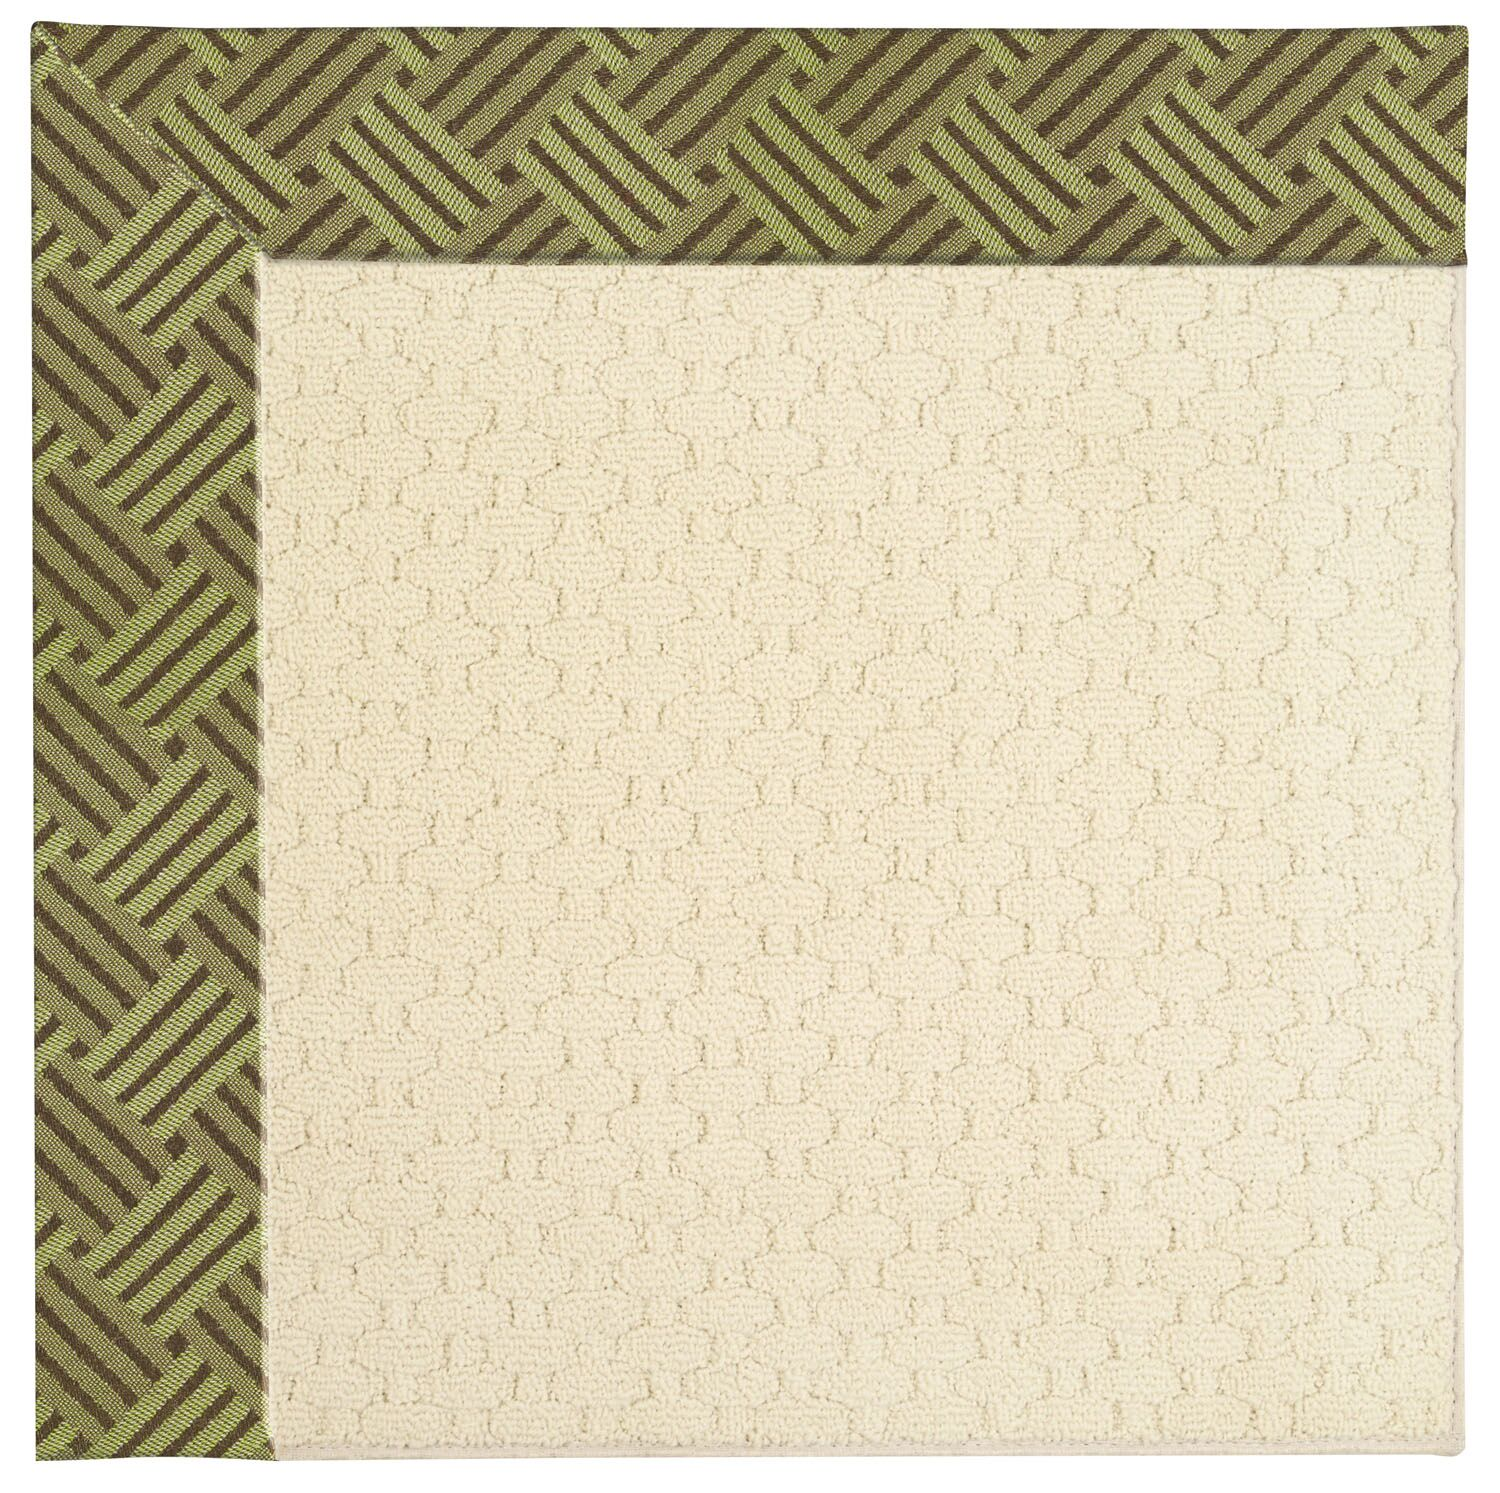 Lisle Off White Indoor/Outdoor Area Rug Rug Size: Square 10'